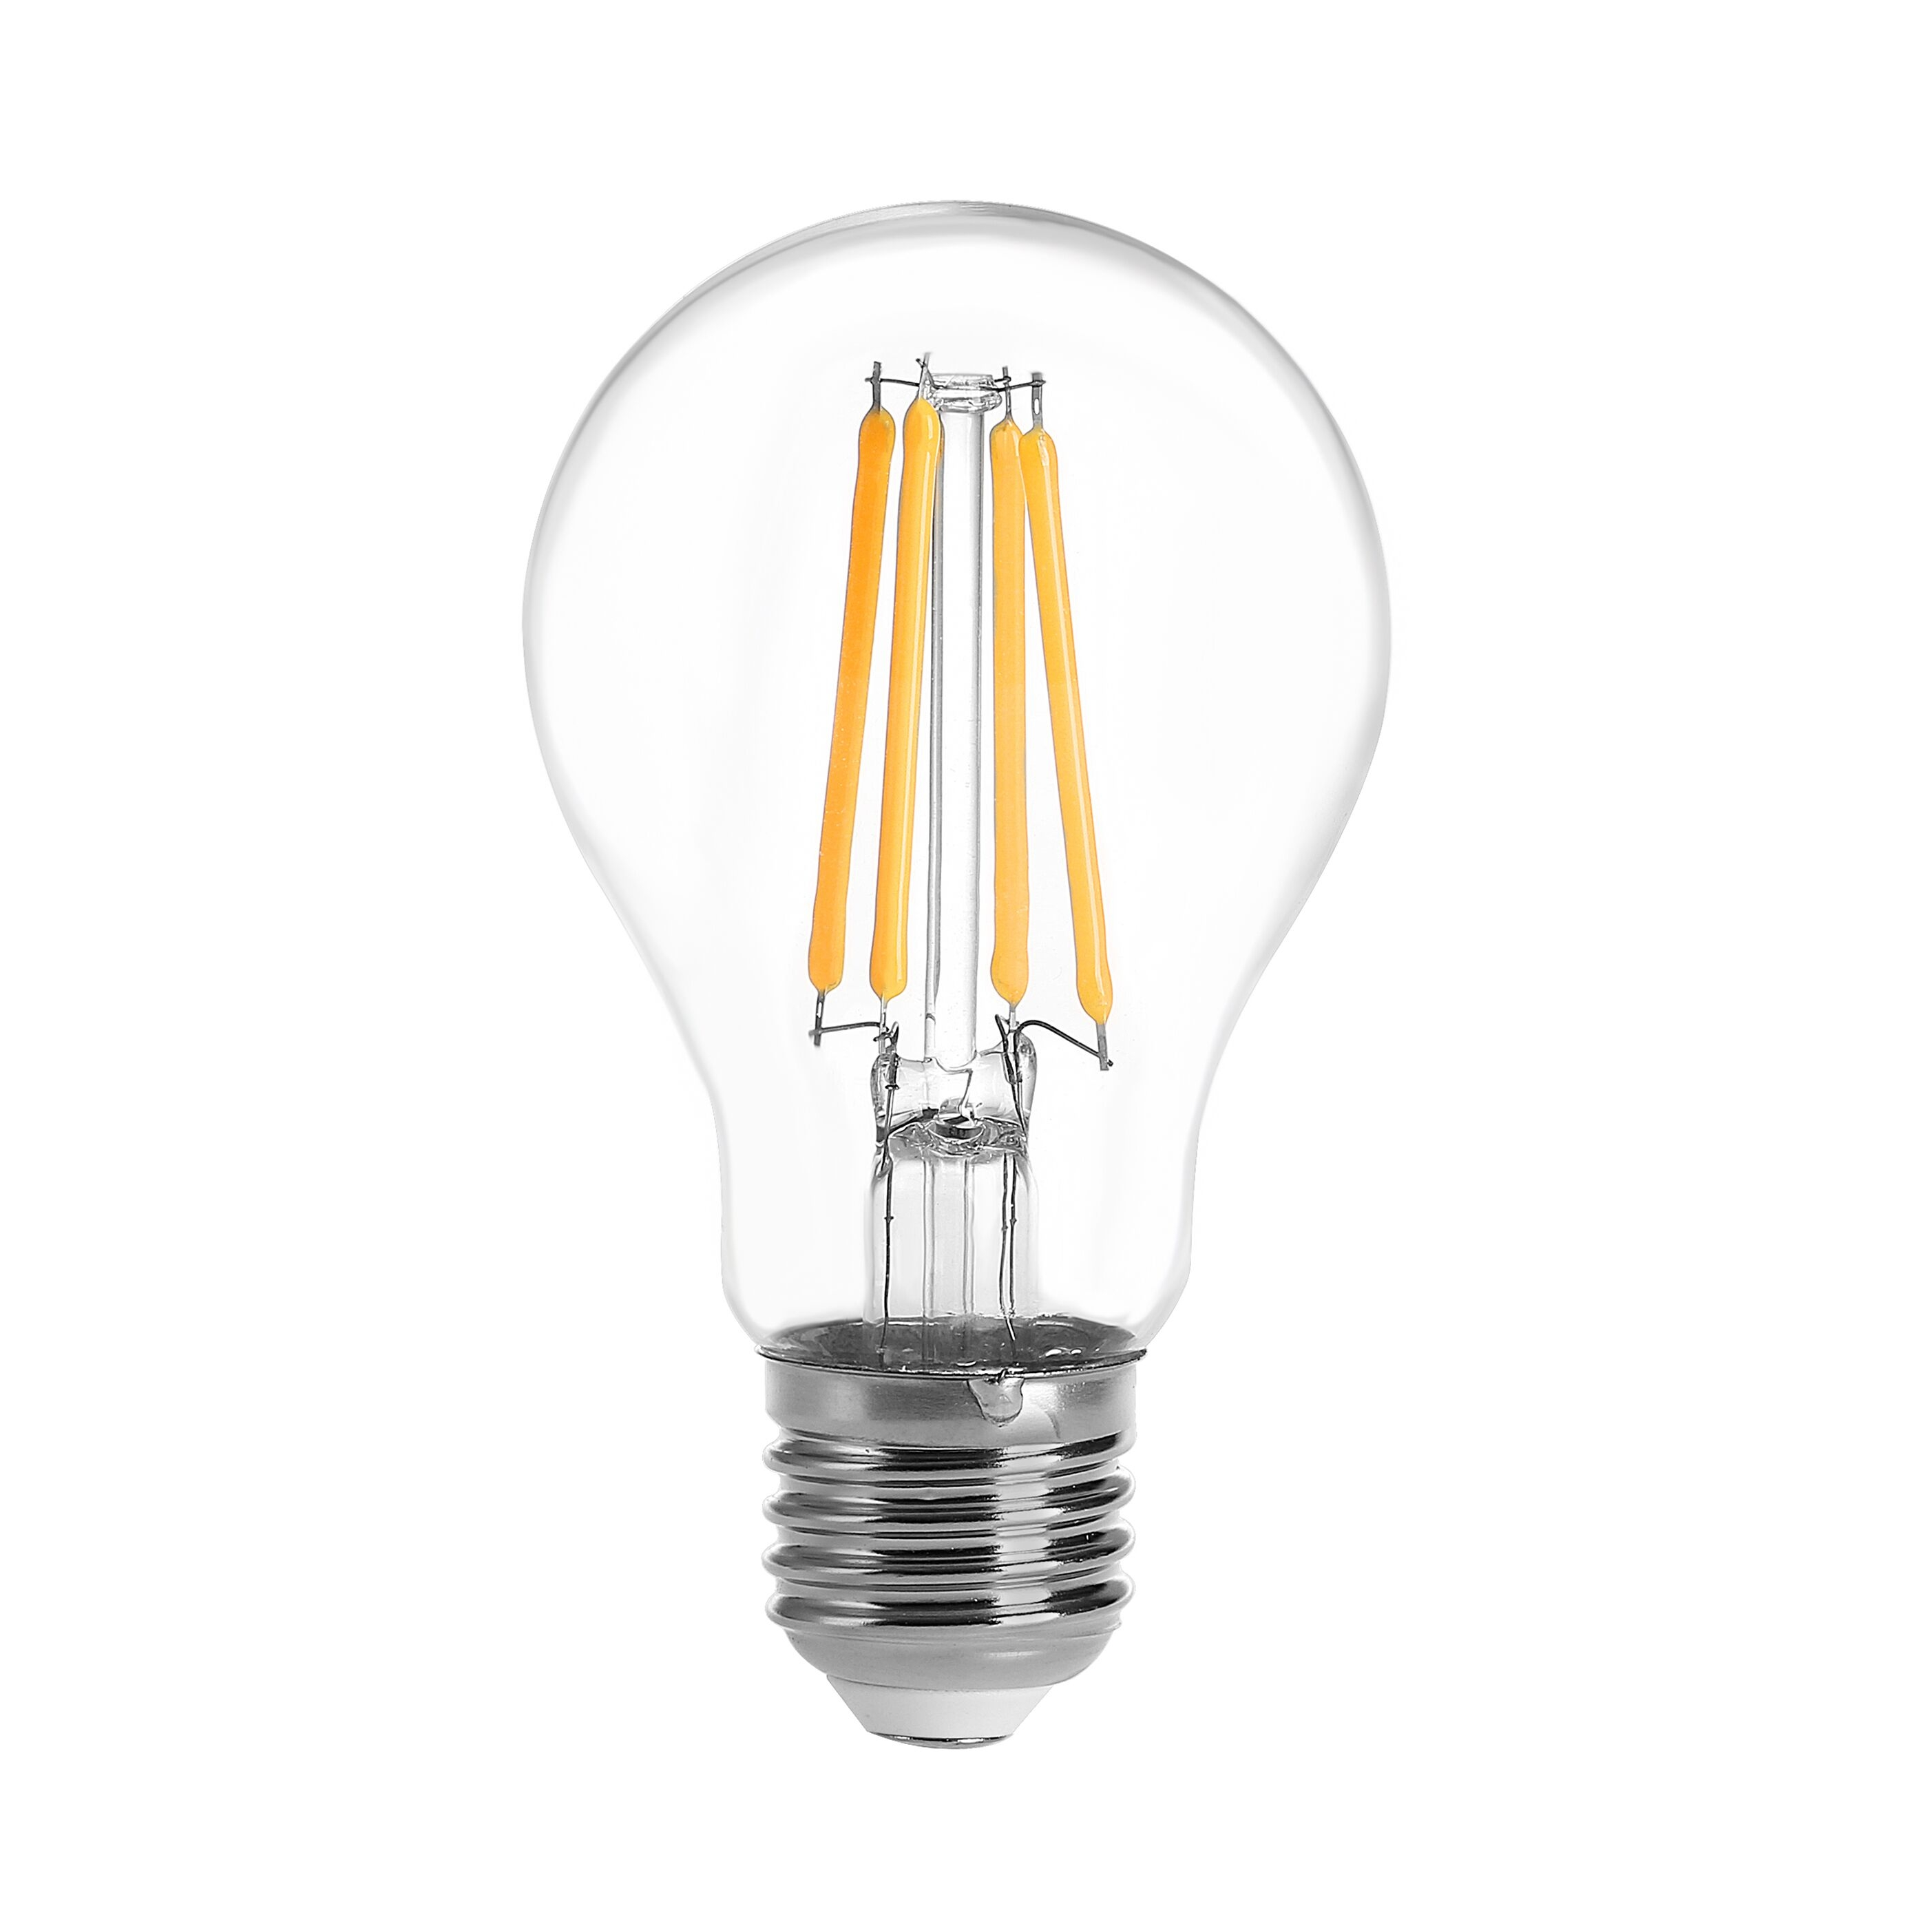 LED gloeilamp GLS A19 A60 gemaakt in China, Filament LED lamp ...